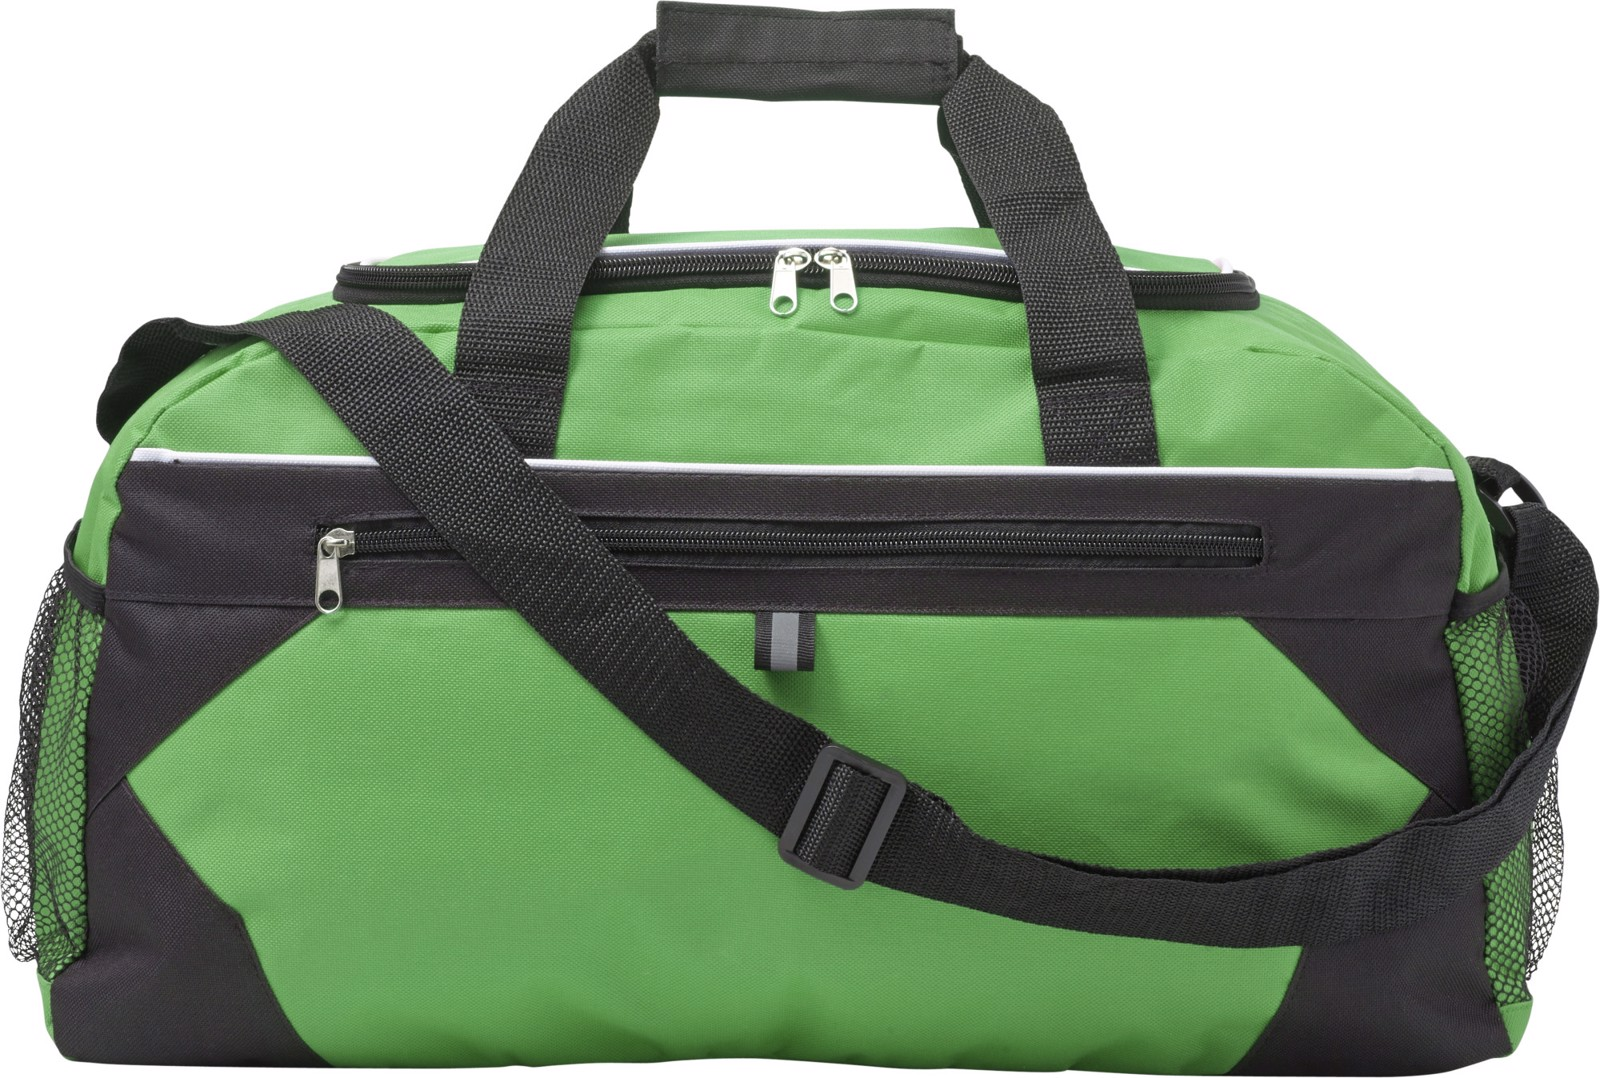 Polyester (600D) sports bag - Green